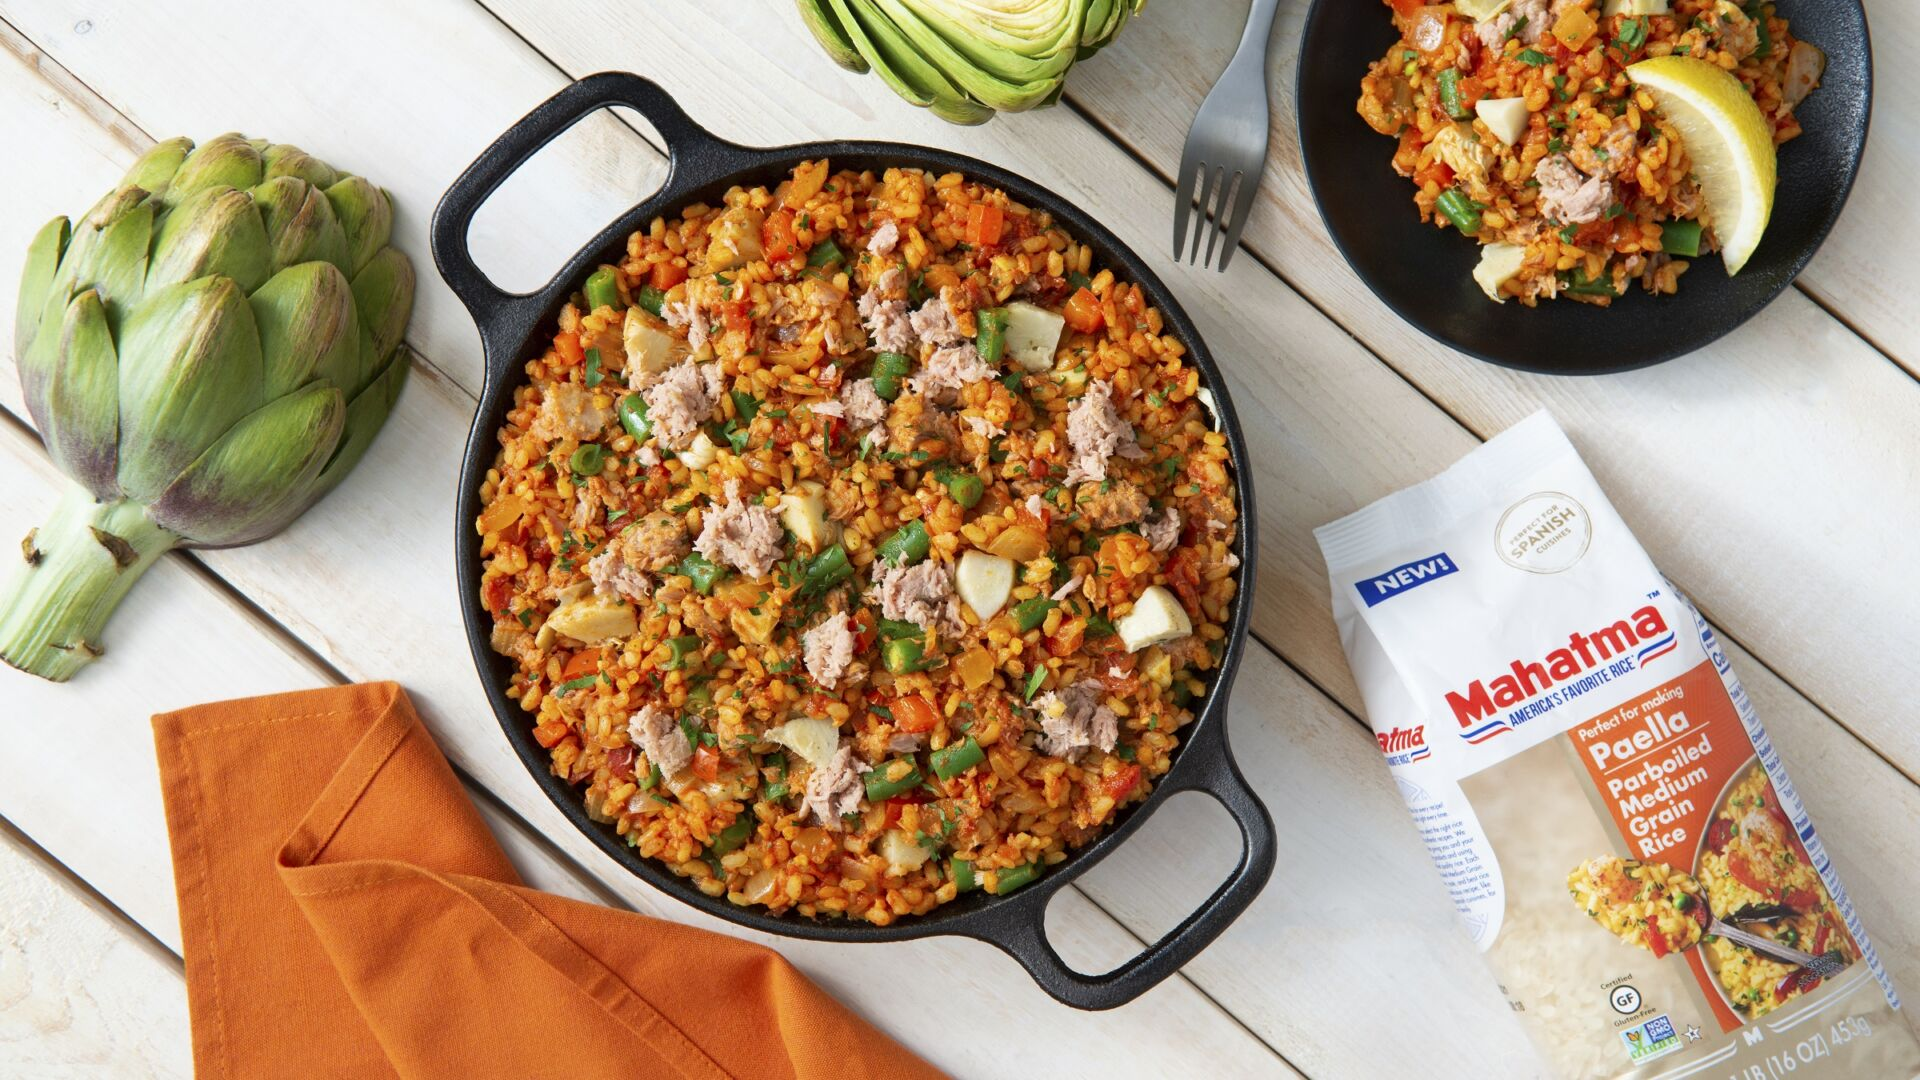 Tuna and Artichoke Paella